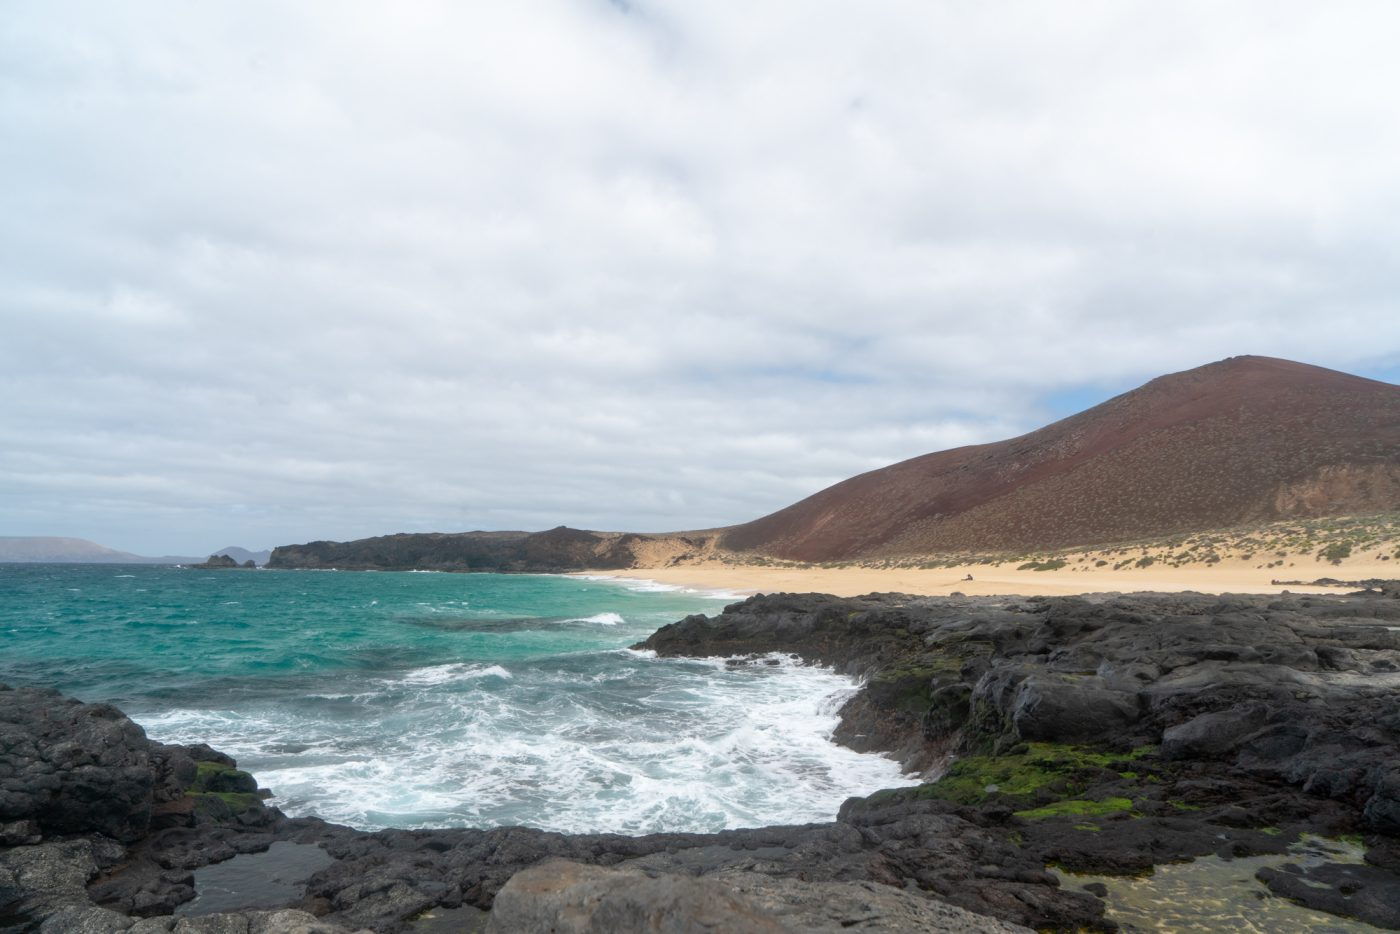 Take the ferry to visit Playa de las Conchas on La Graciosa